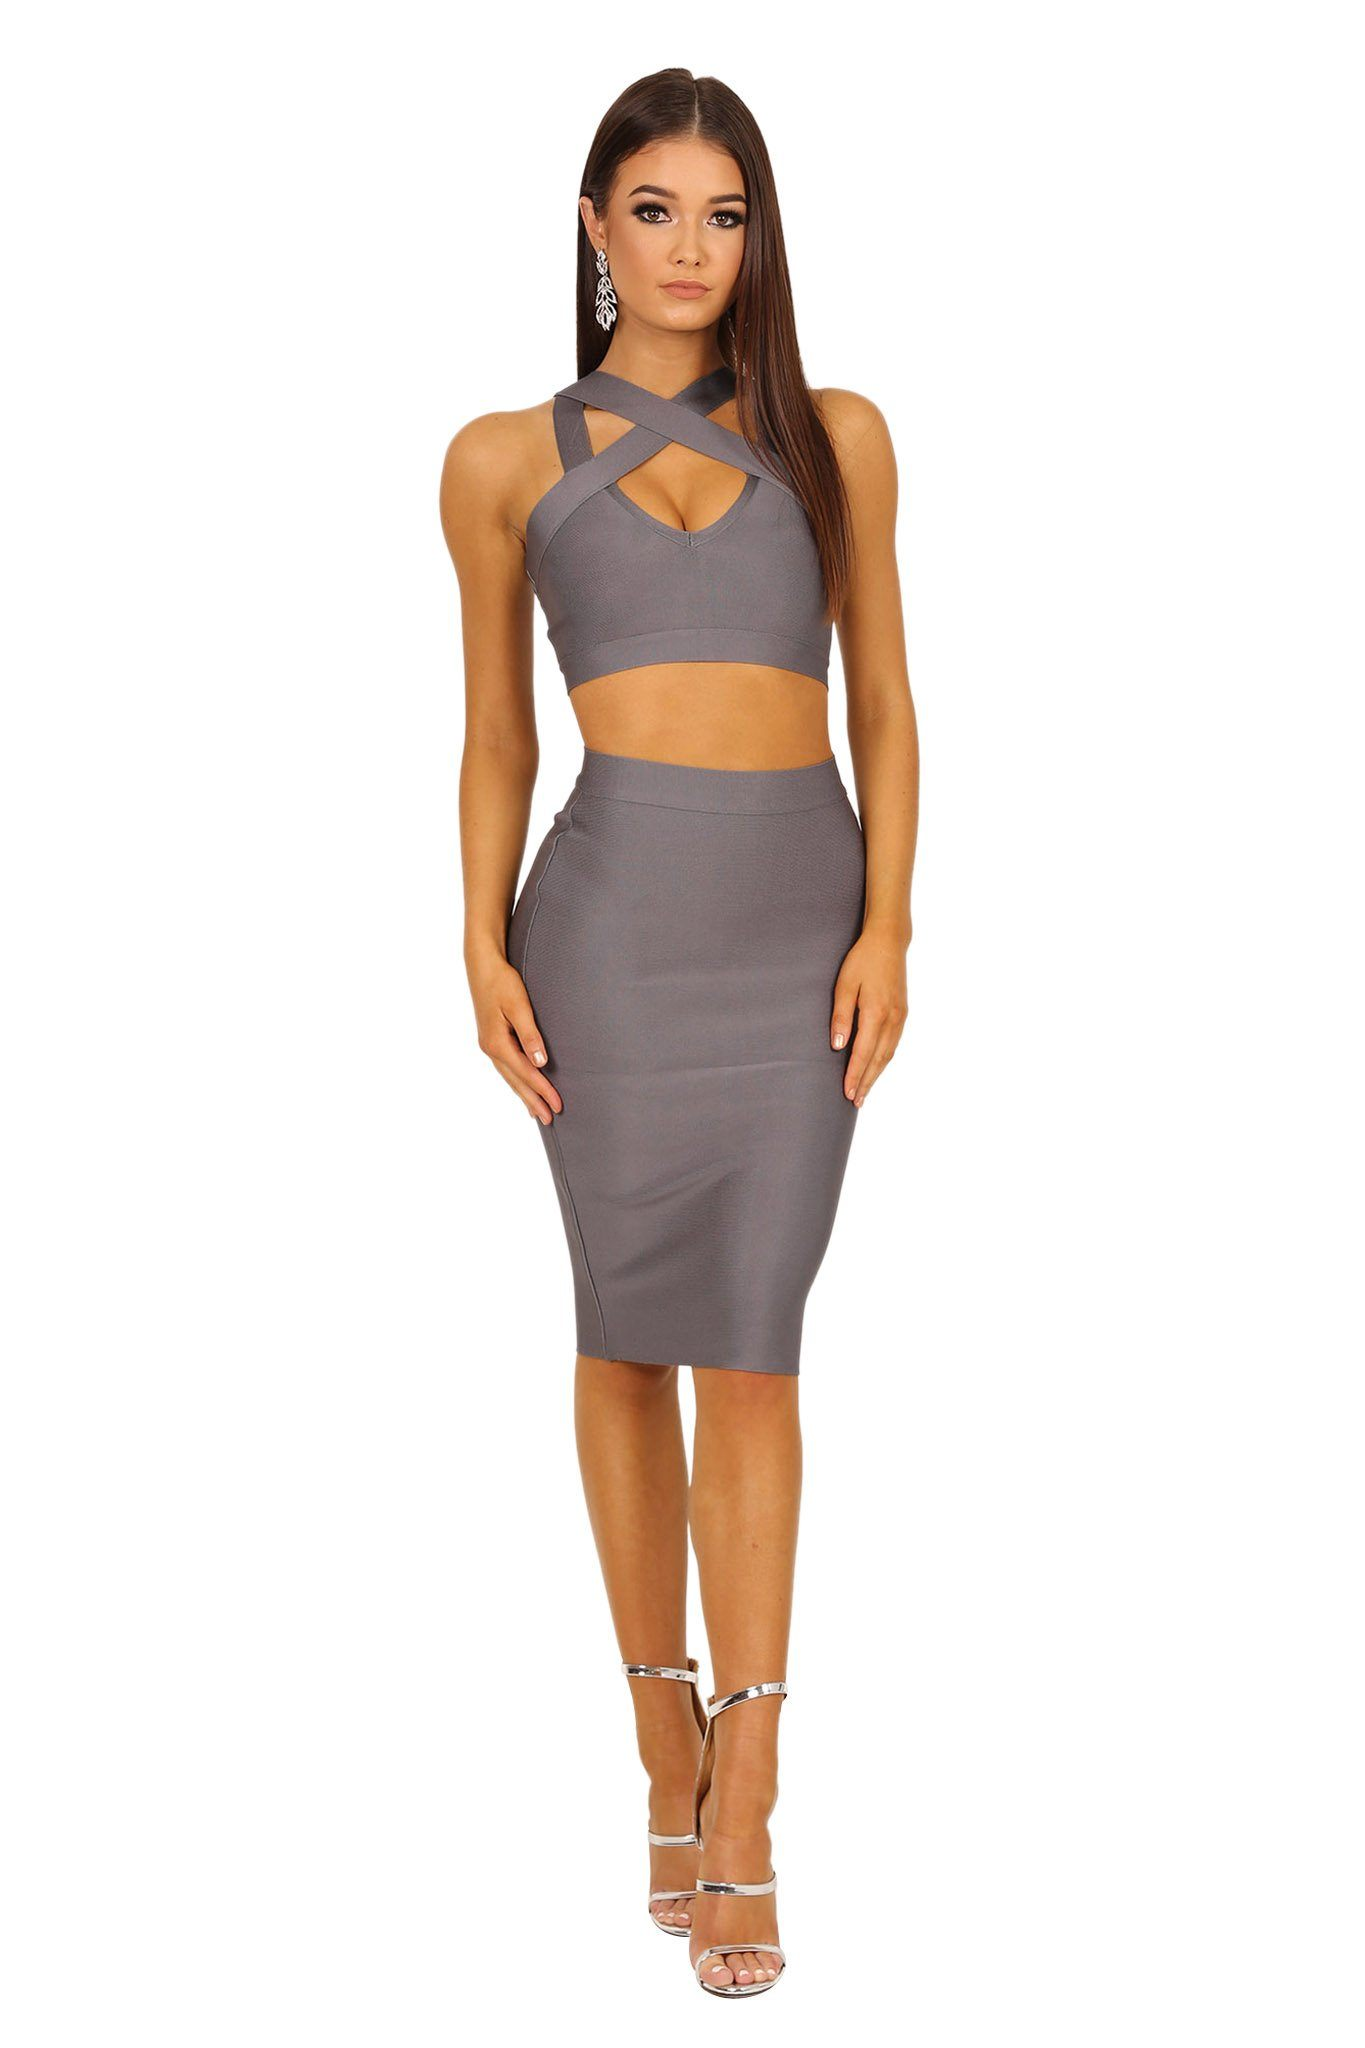 Two-piece bandage set in grey color including a bandage crop top with peephole at bust and a midi length bandage pencil skirt